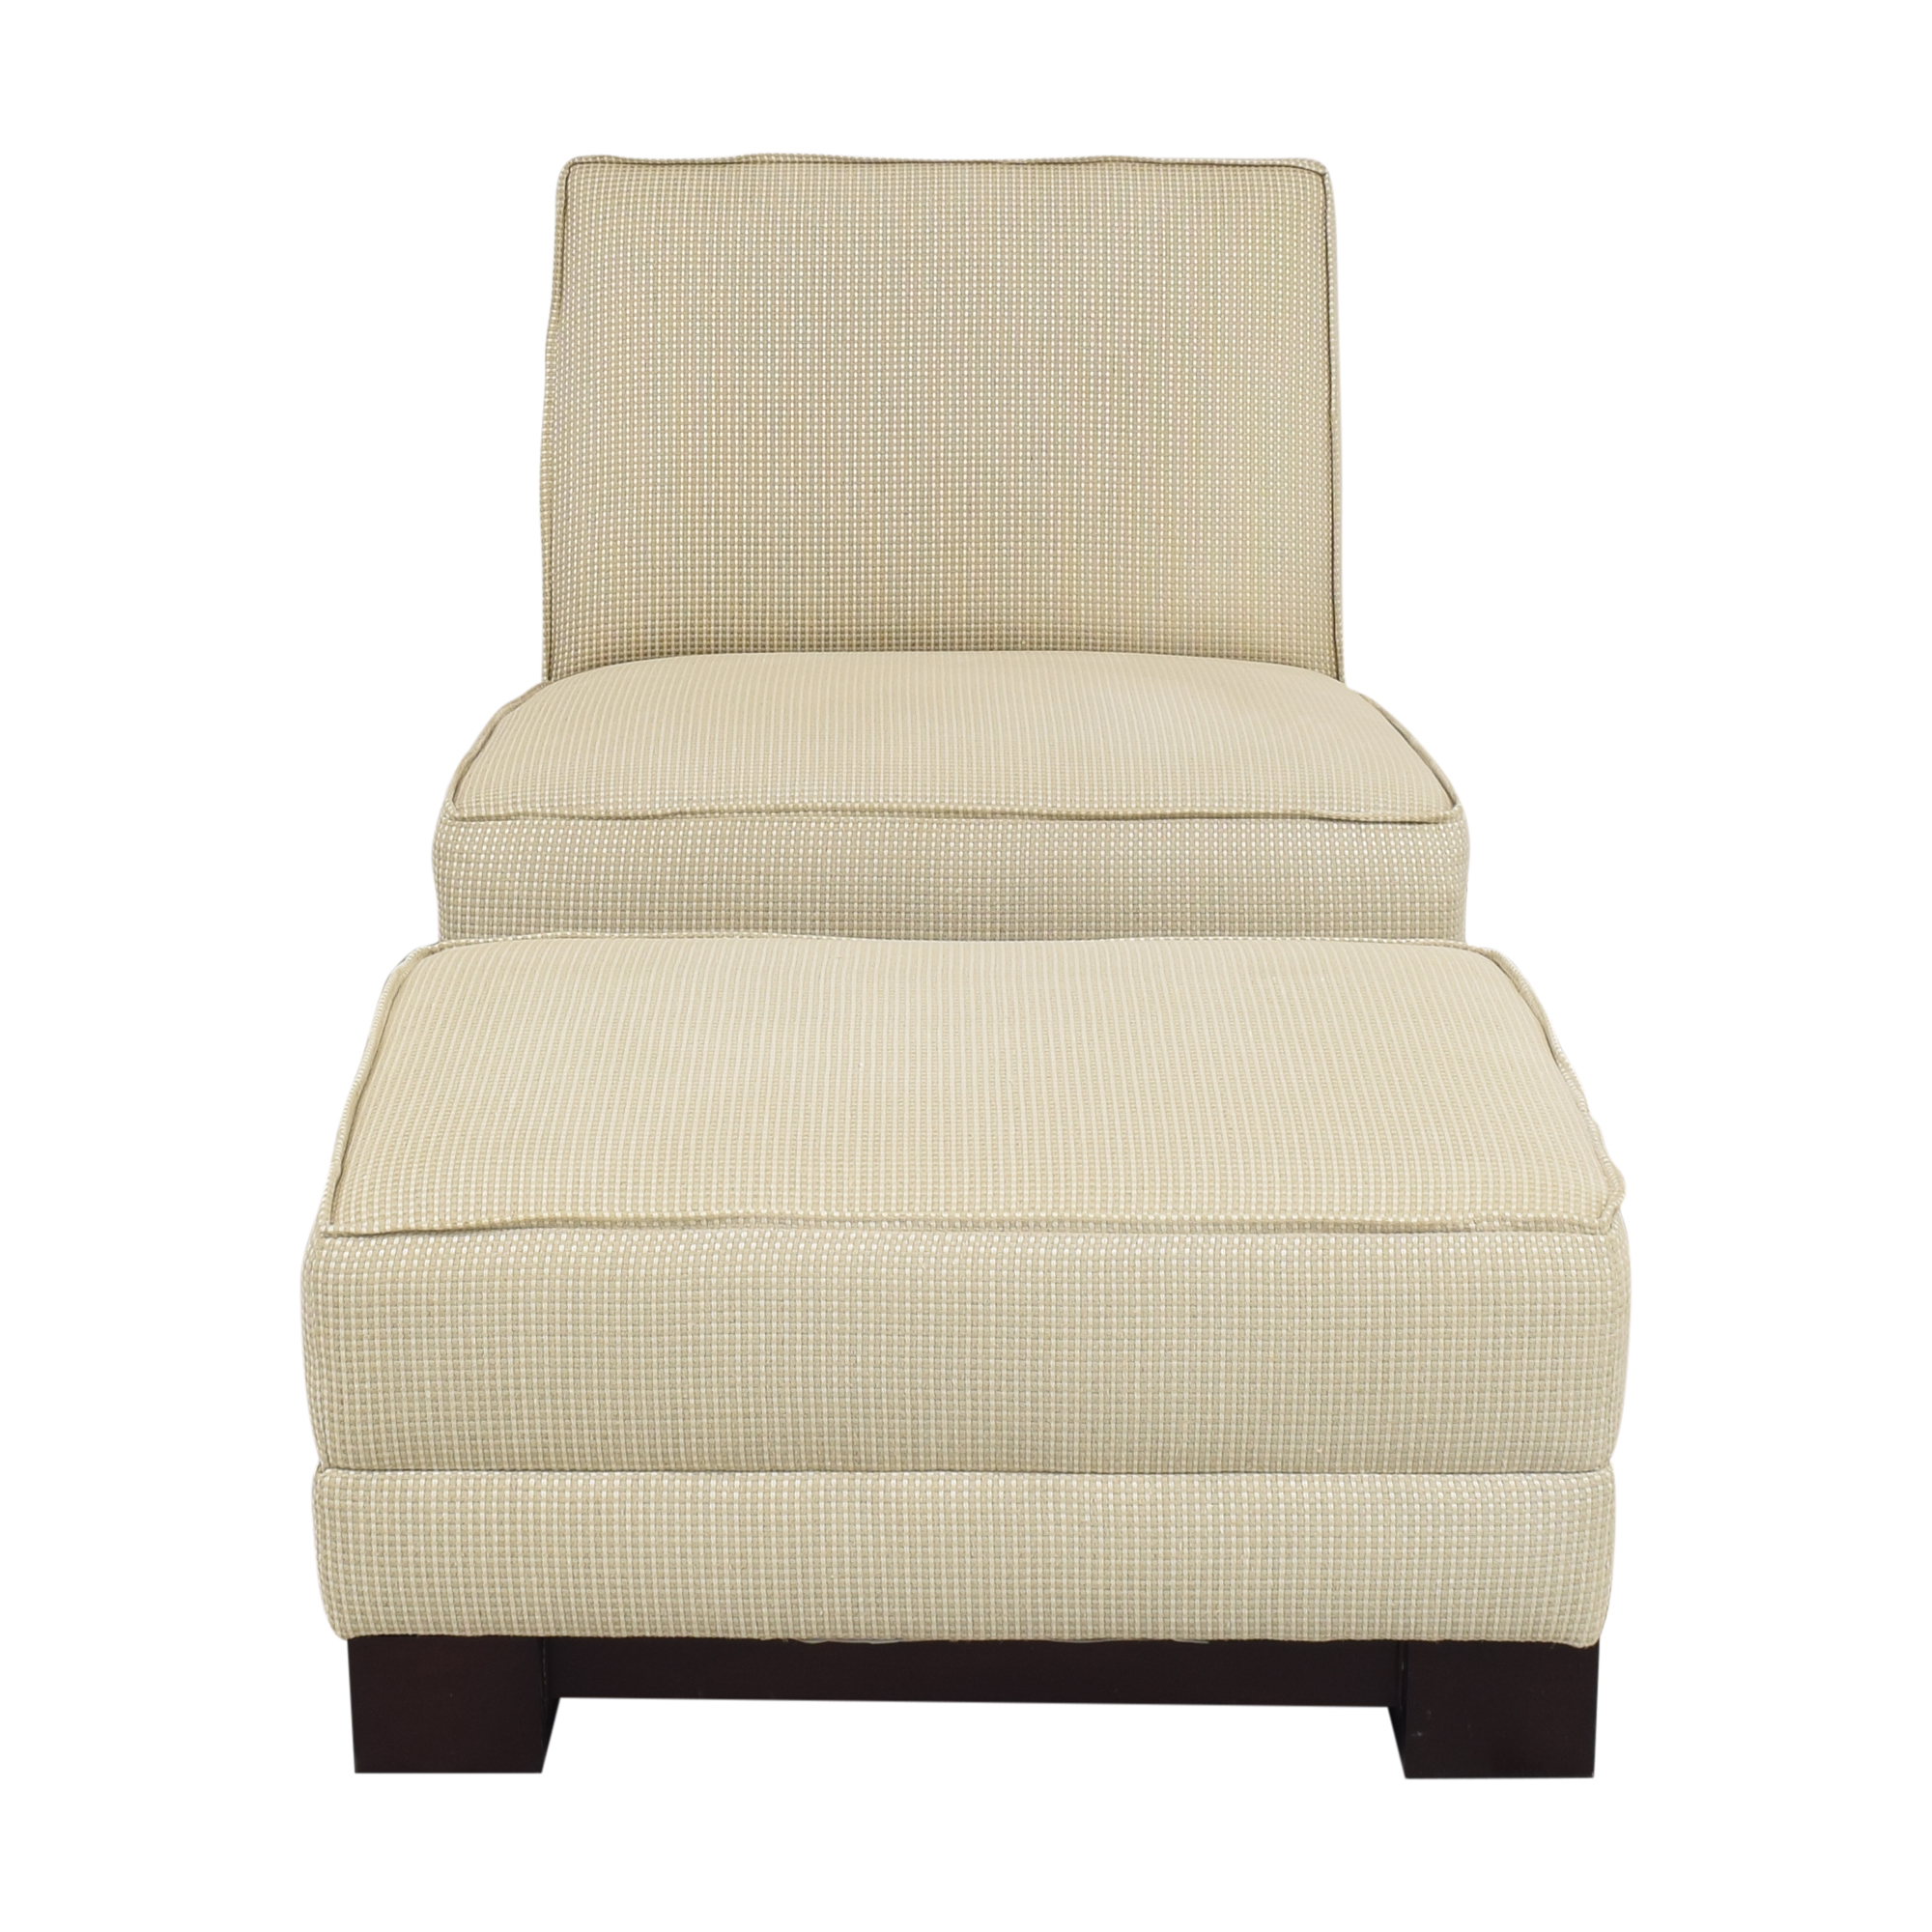 Ralph Lauren Home Ralph Lauren Home Hasley Slipper Chair with Ottoman nj